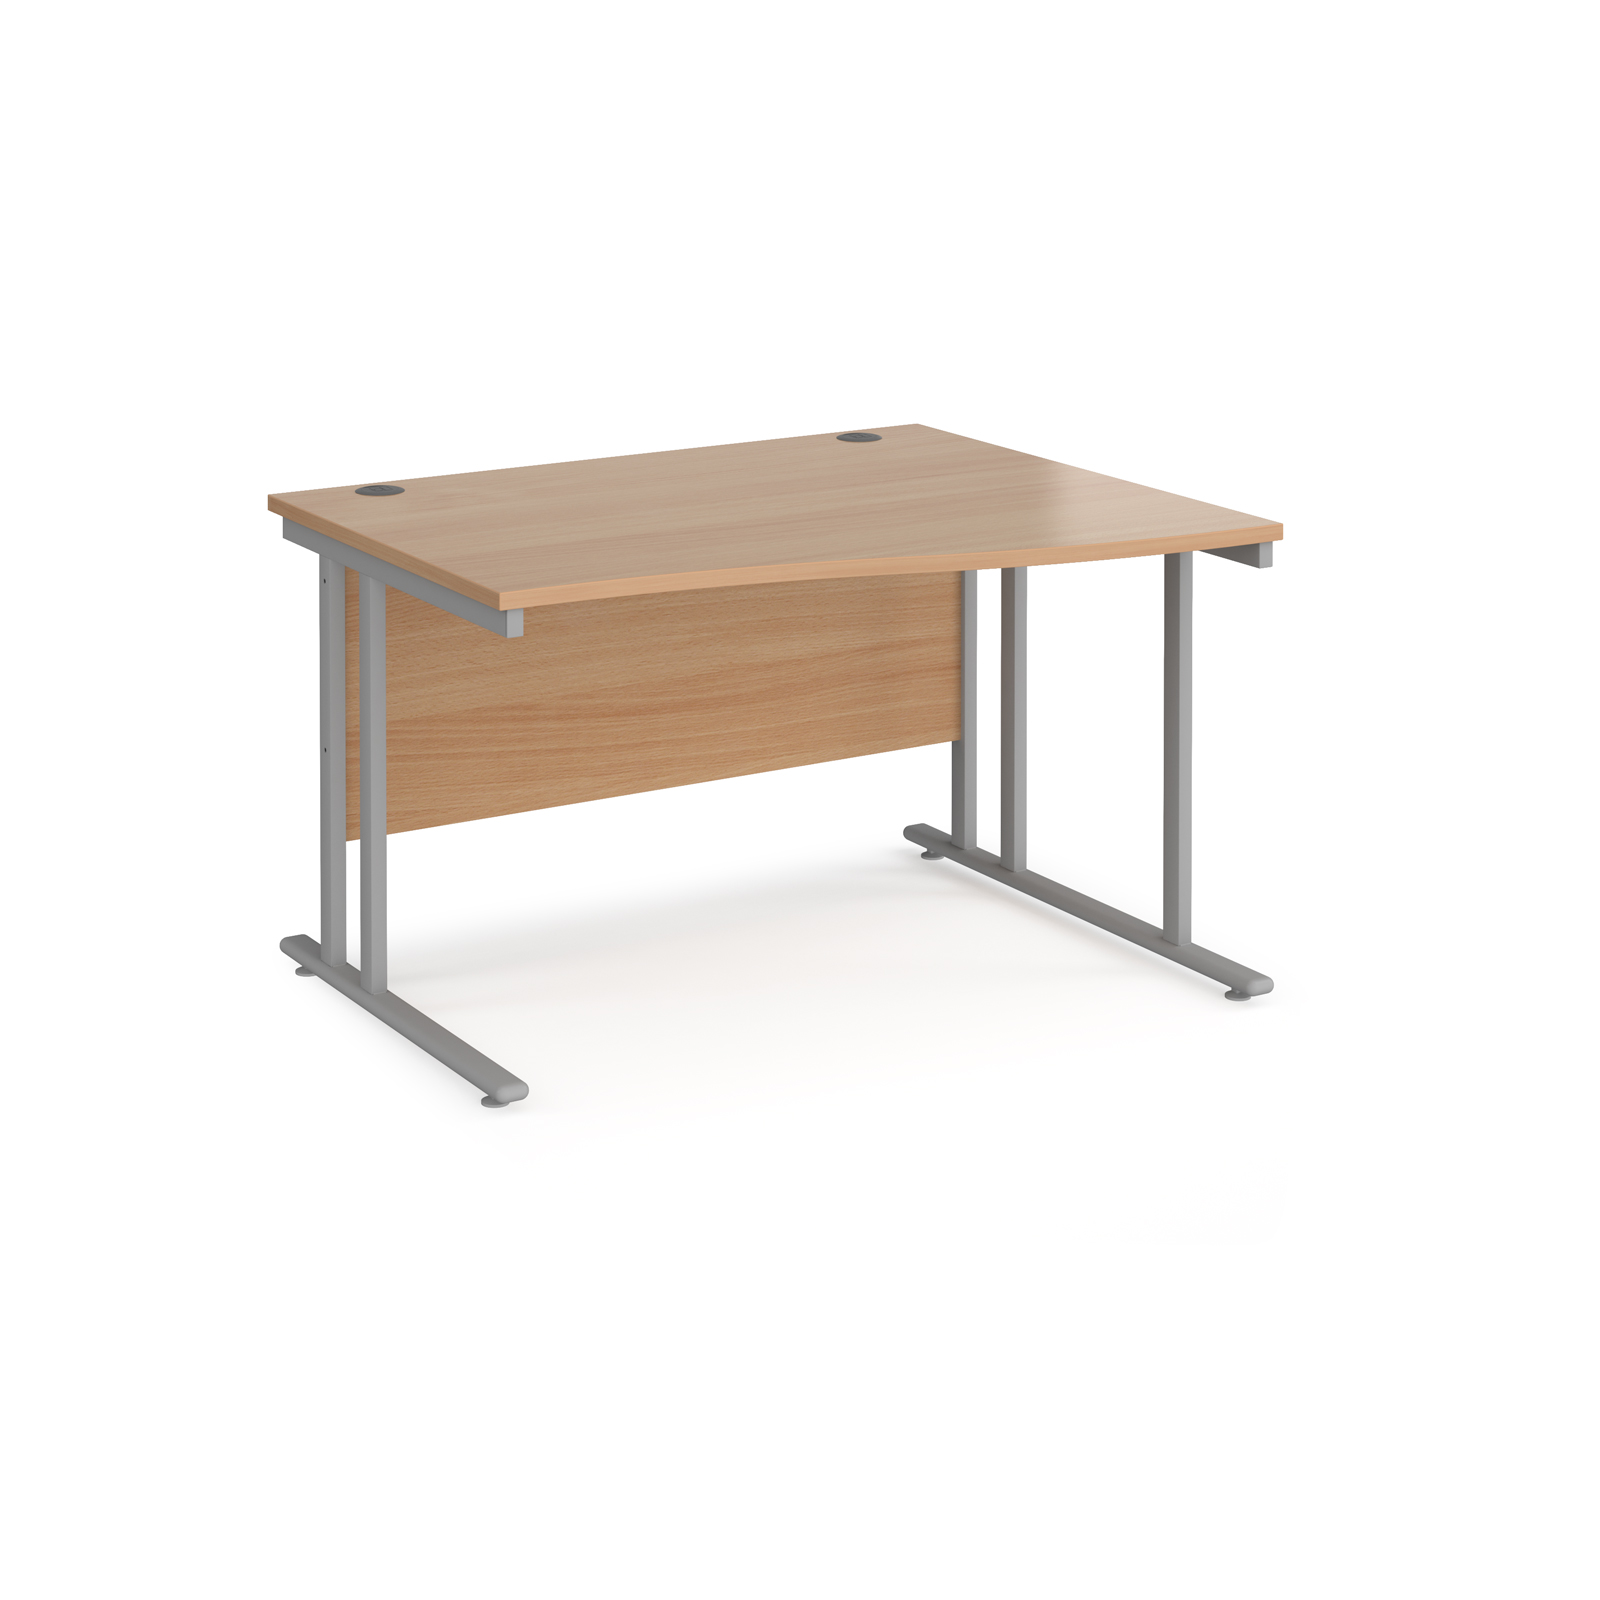 Right Handed Maestro 25 right hand wave desk 1200mm wide - silver cantilever leg frame, beech top